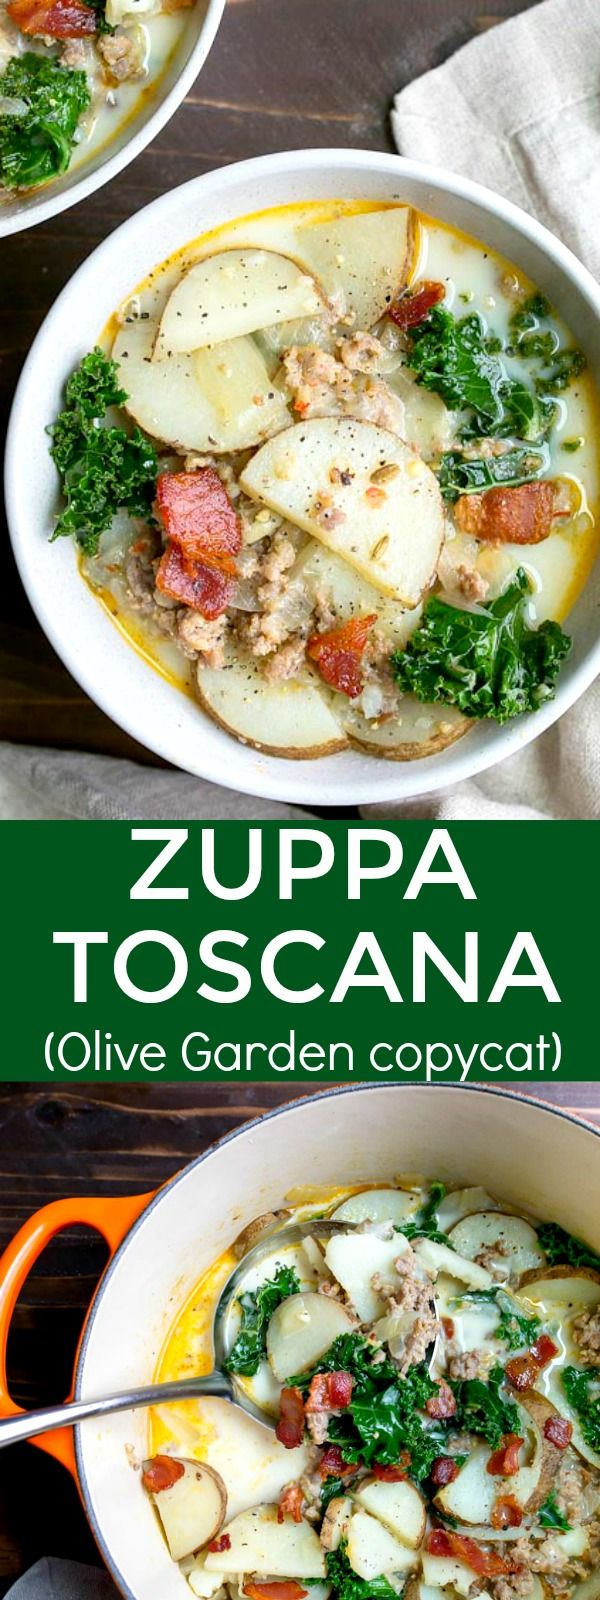 Zuppa Toscana soup recipe, a copycat Olive Garden soup with potatoes, kale, bacon, and sausage. Creamy potato soup made with bacon, sausage and kale that tastes just like Olive Garden's Zupa Toscana soup! via @dessertfortwo